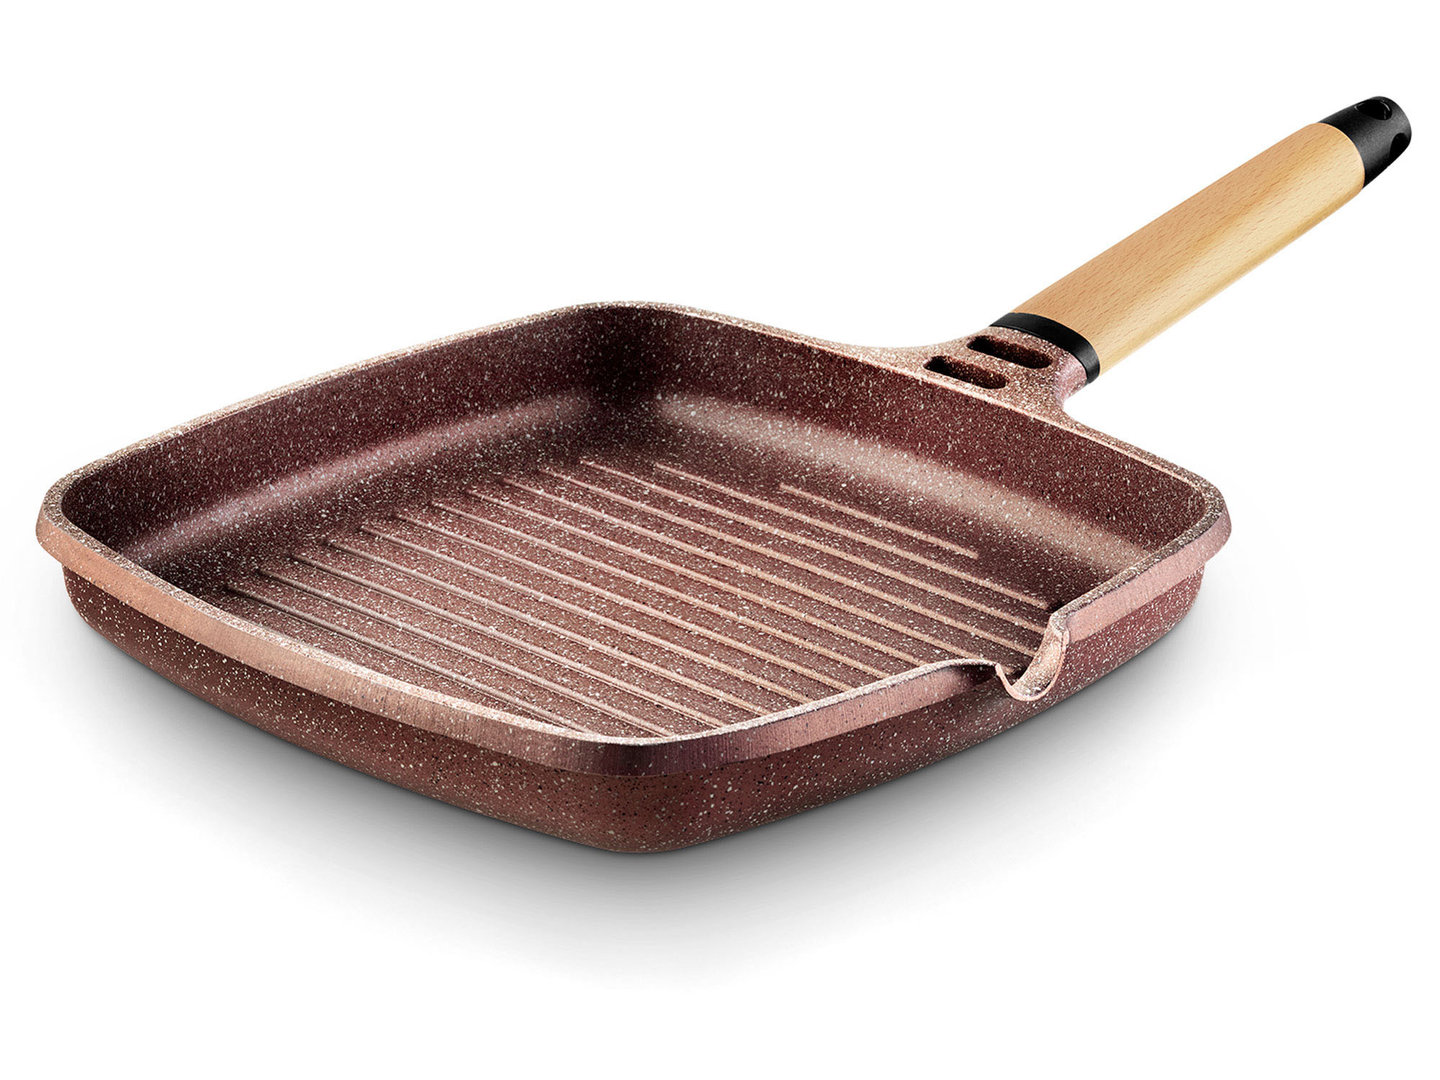 CASTEY cast alu grill pan TERRACOTA 27 x 27 cm detachable wooden handle induction